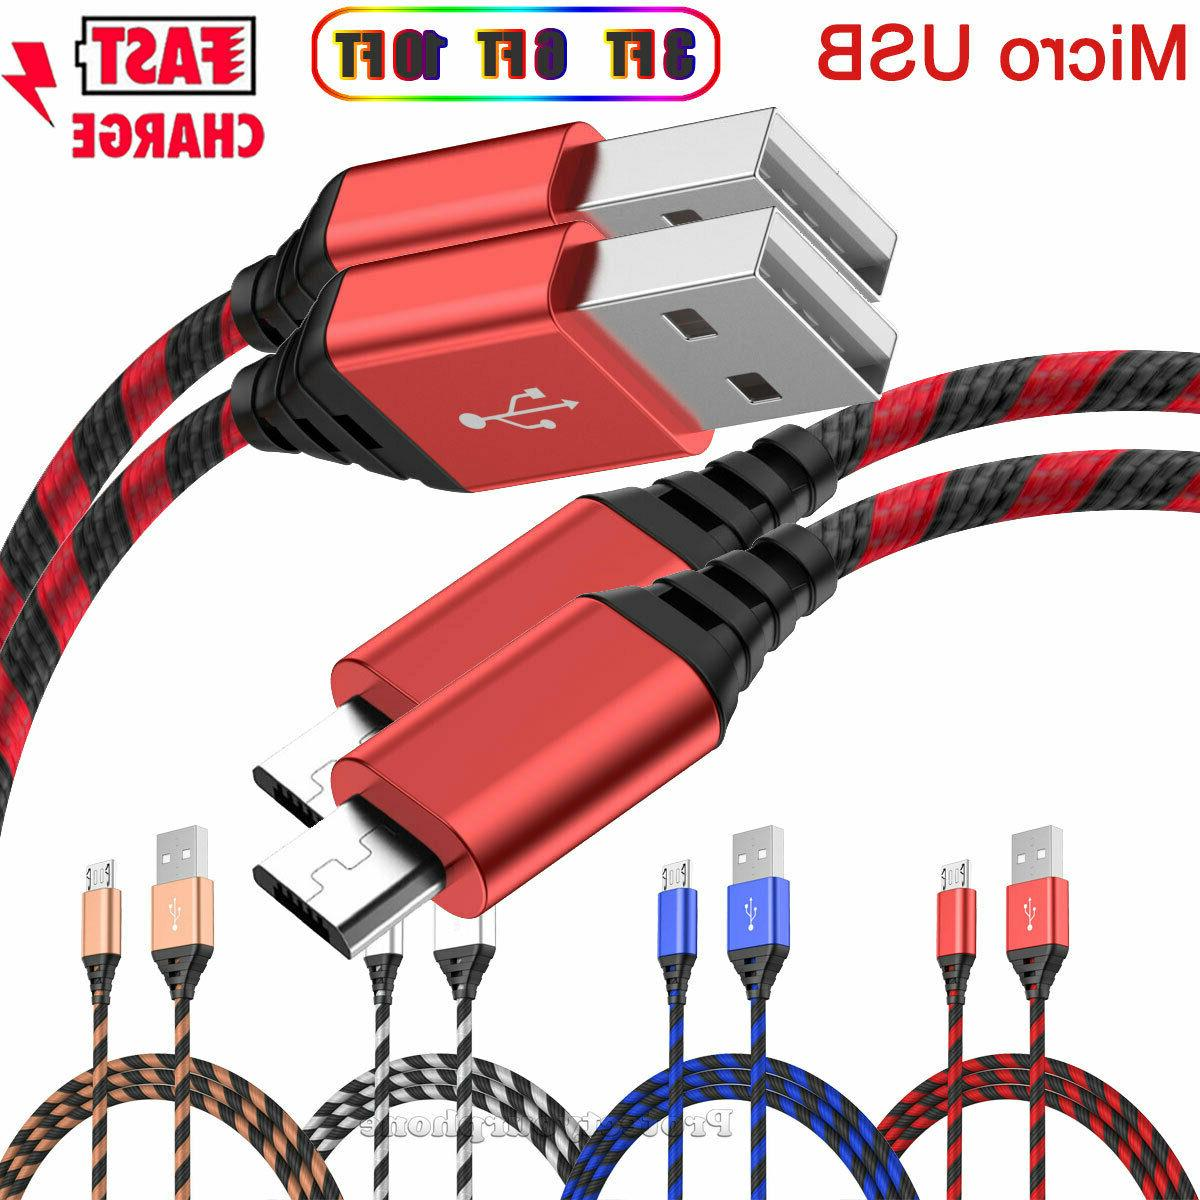 2 pack micro usb charger fast charging